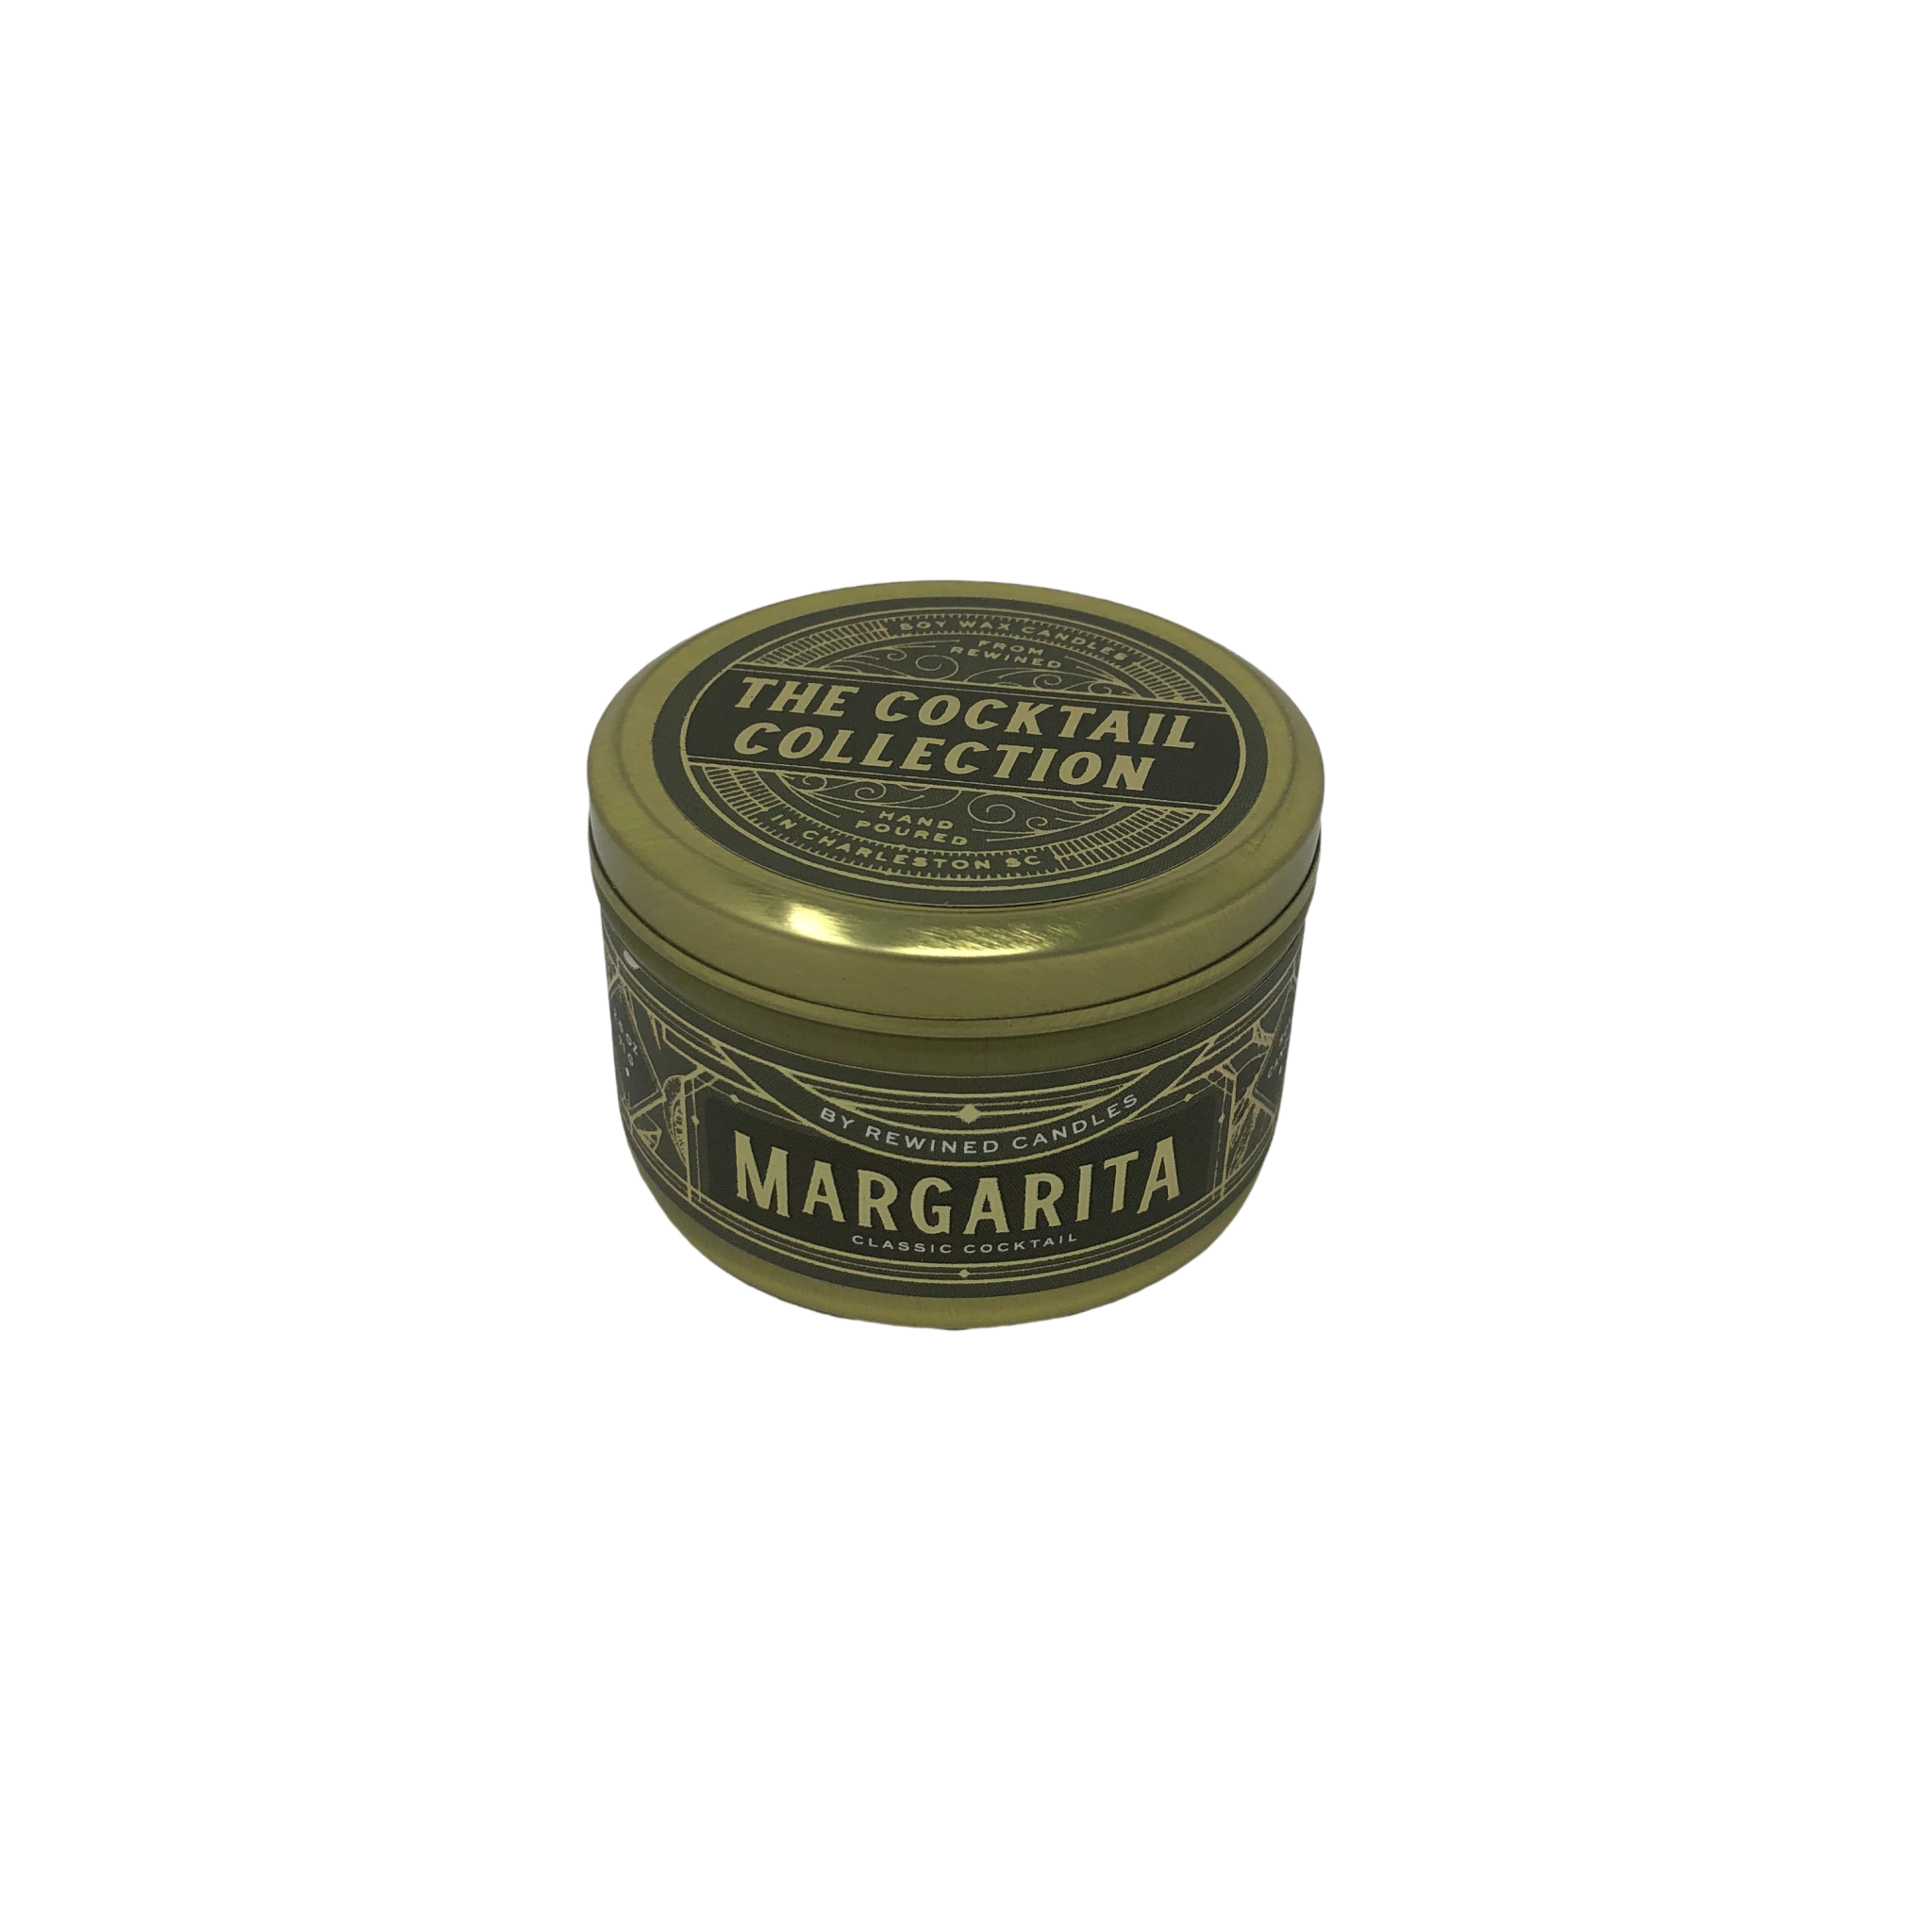 Rewined Margarita Travel Tin Candle